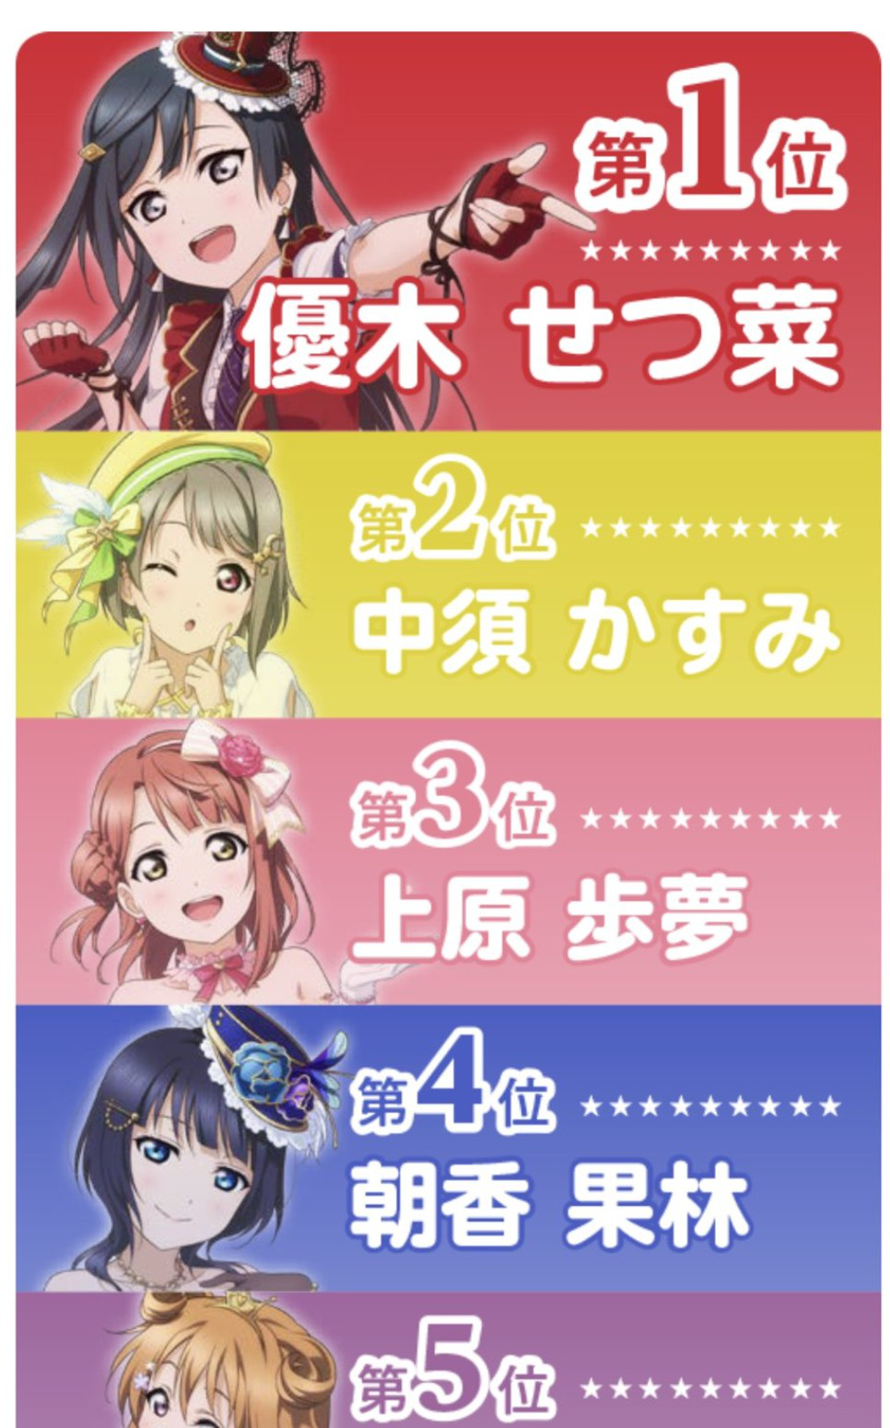 Kasumin is second place!! 😭 Im so happy... Kasuminz keep voting❤️